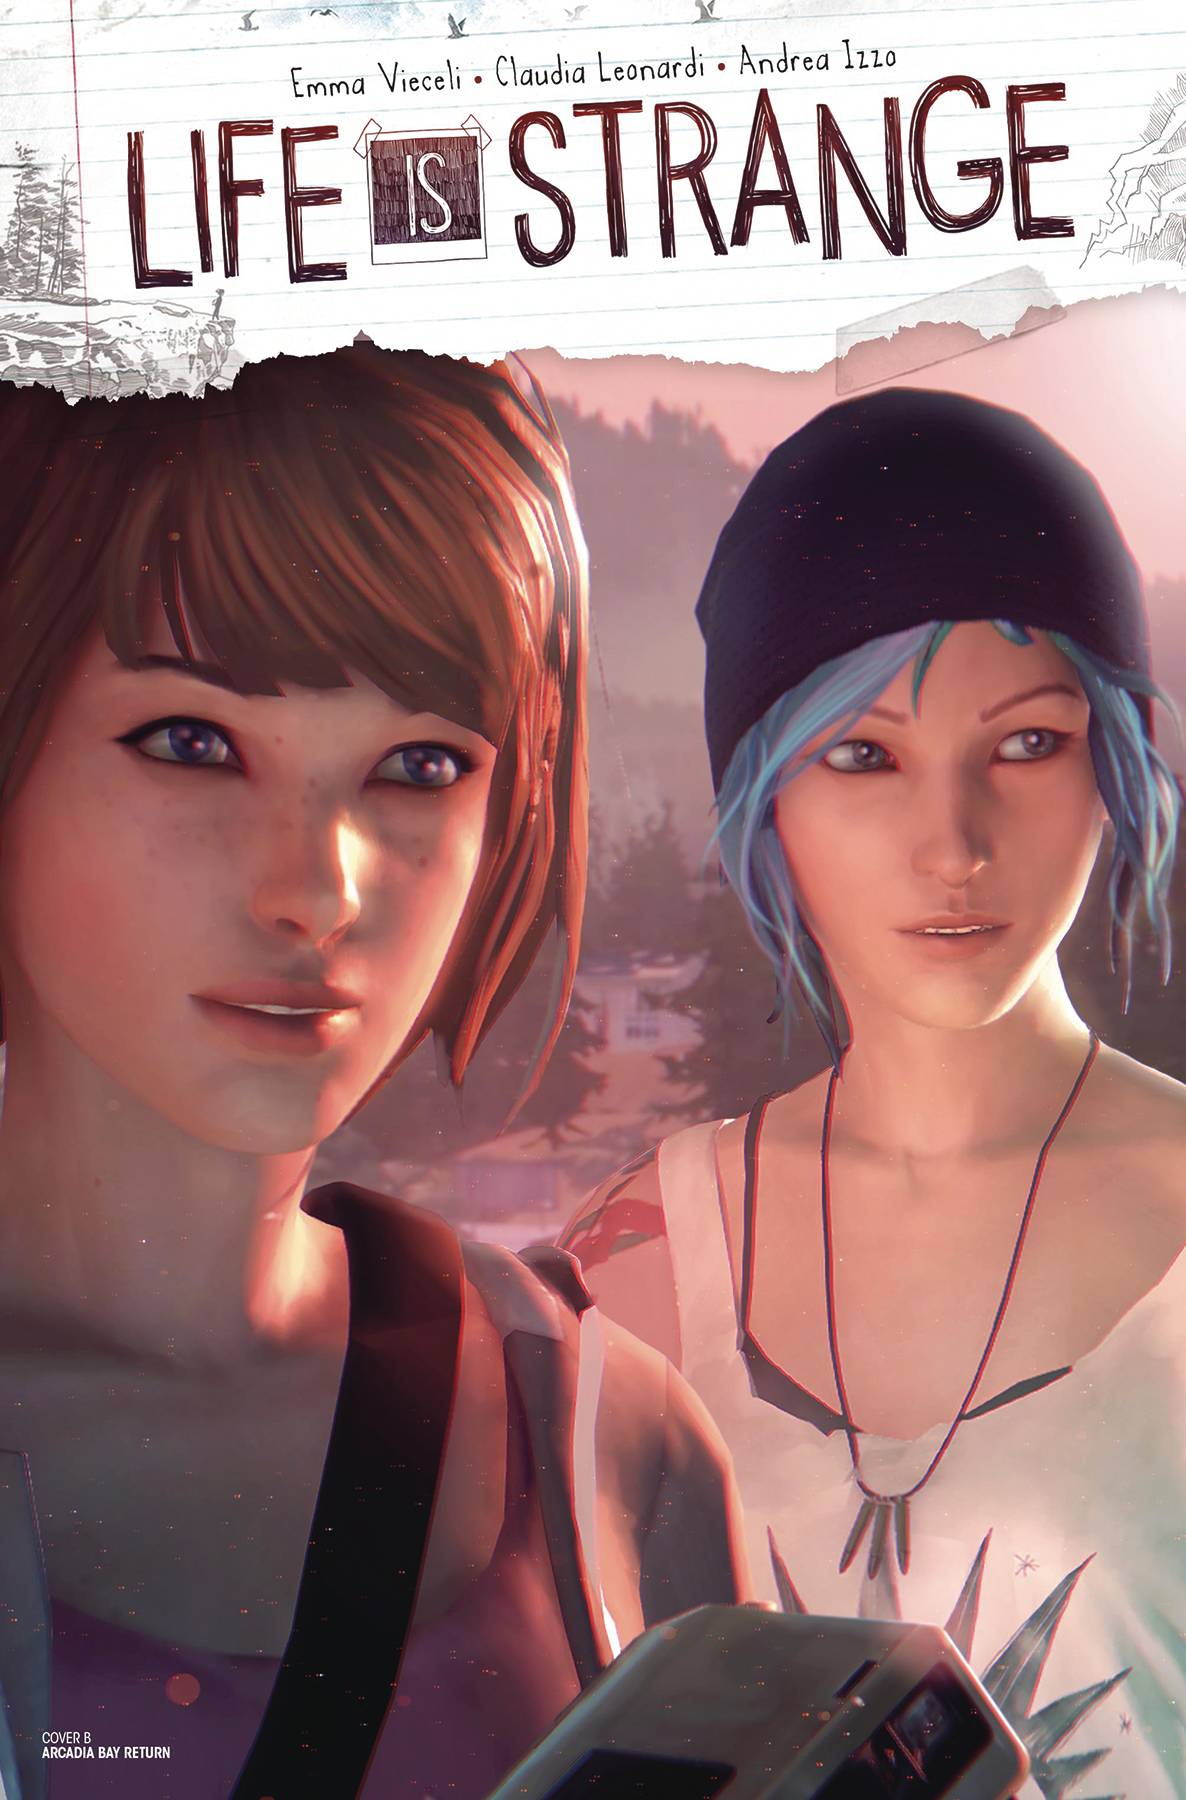 LIFE IS STRANGE 2 CVR B GAME ART.jpg